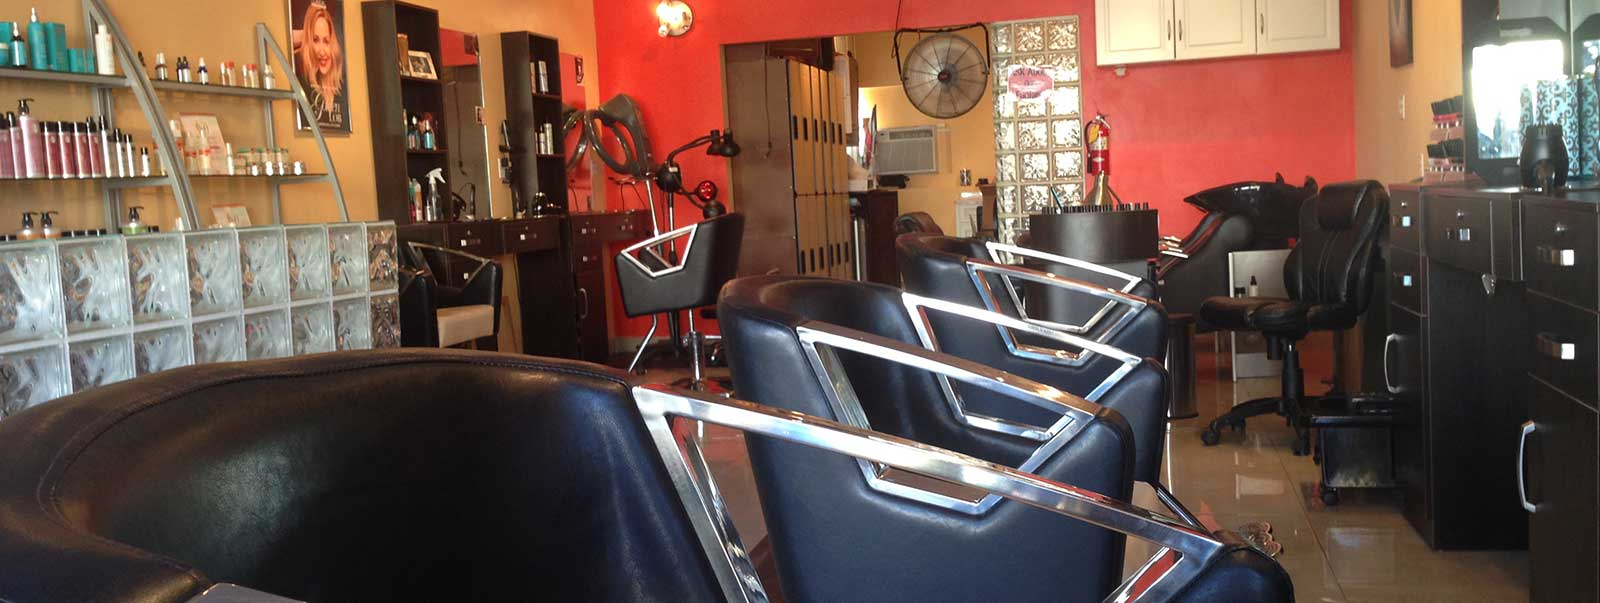 Hair salon oceanside hair color keratin oceanside for 101 beauty salon